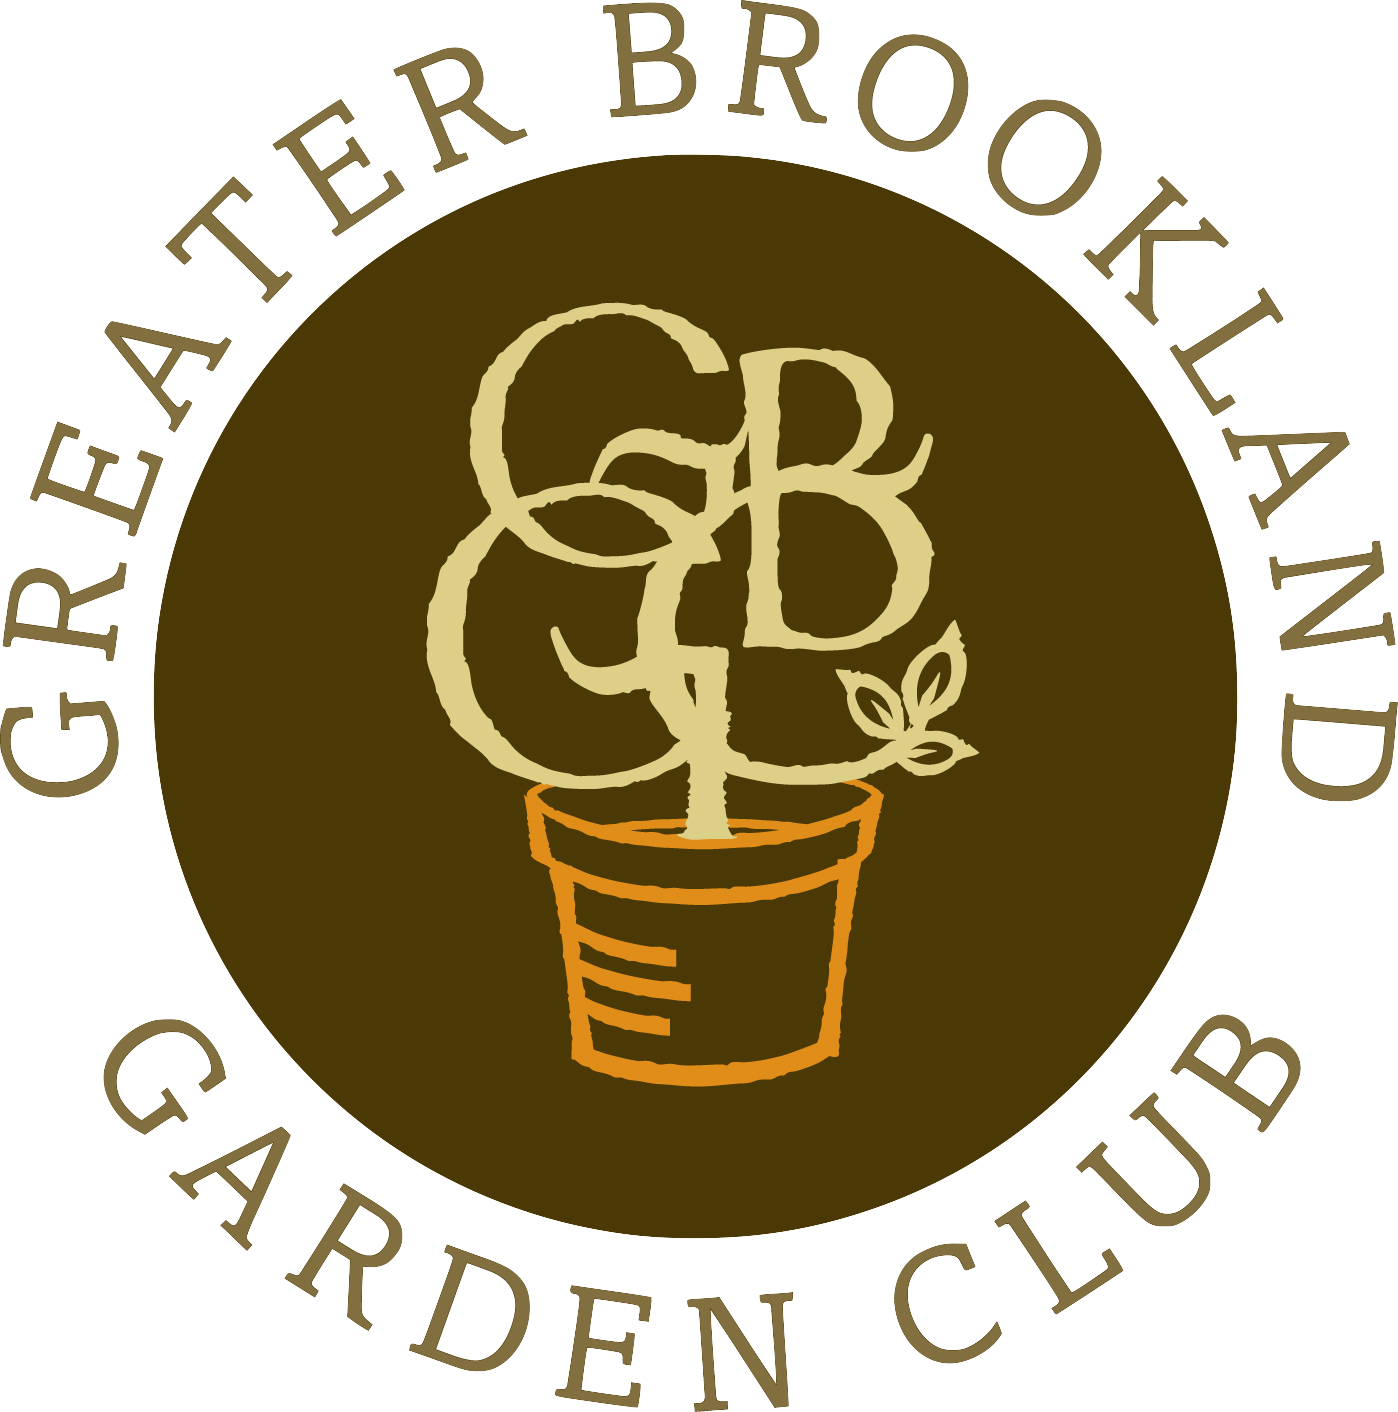 Greater Brookland Garden Club